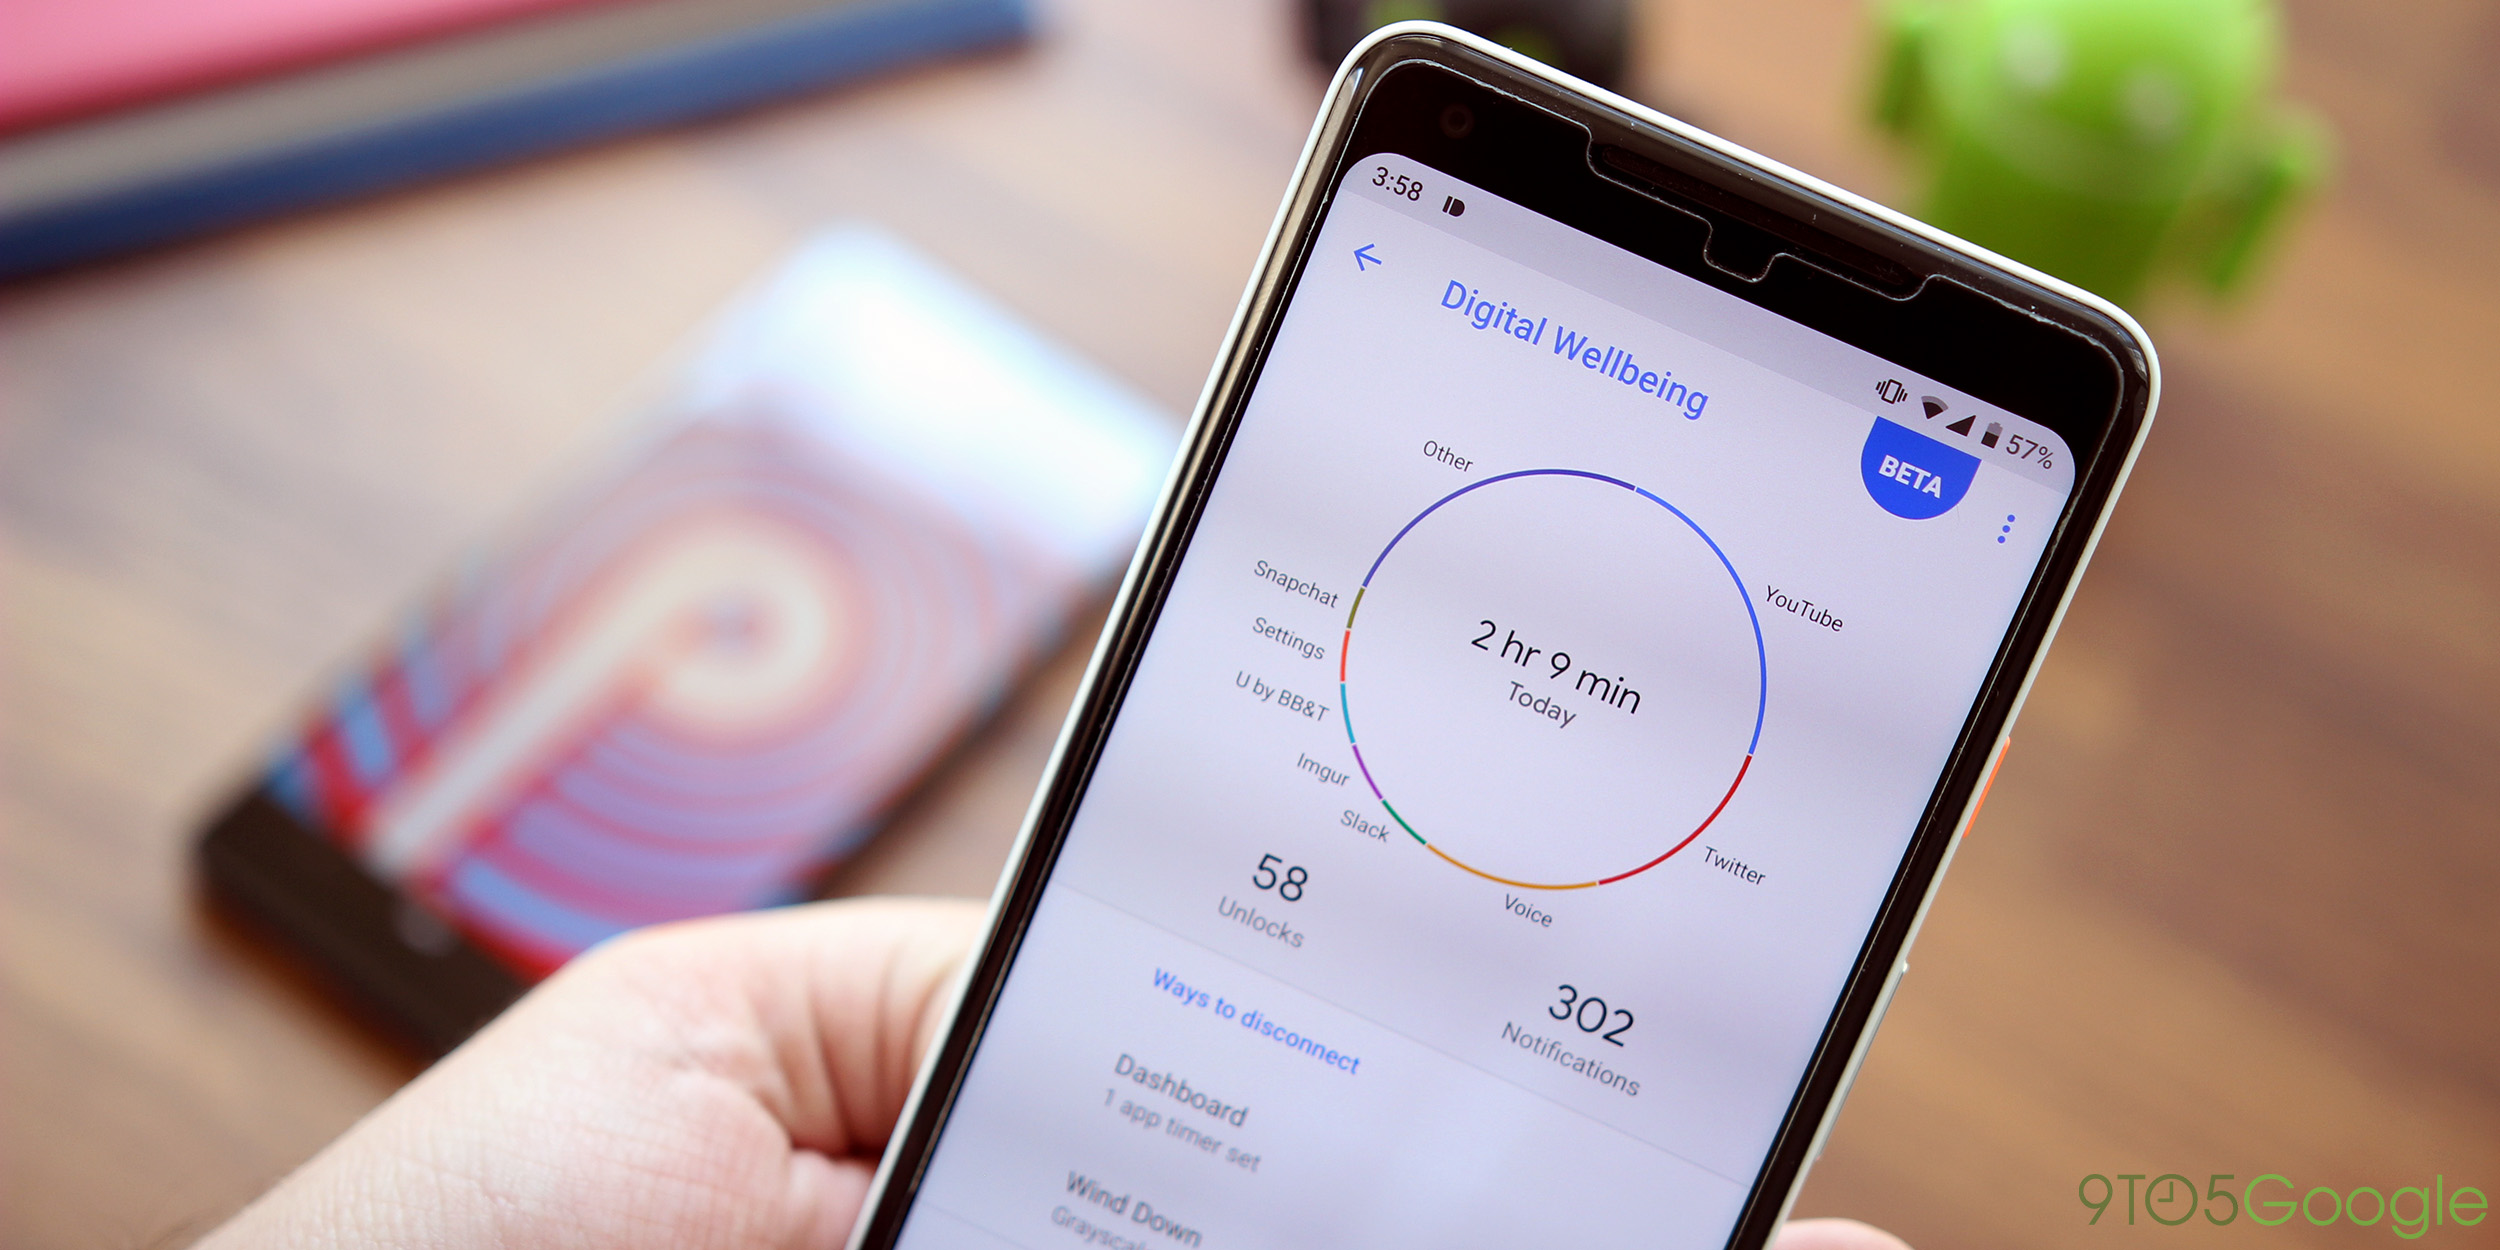 google officially opens up digital wellbeing to android one devices running pie